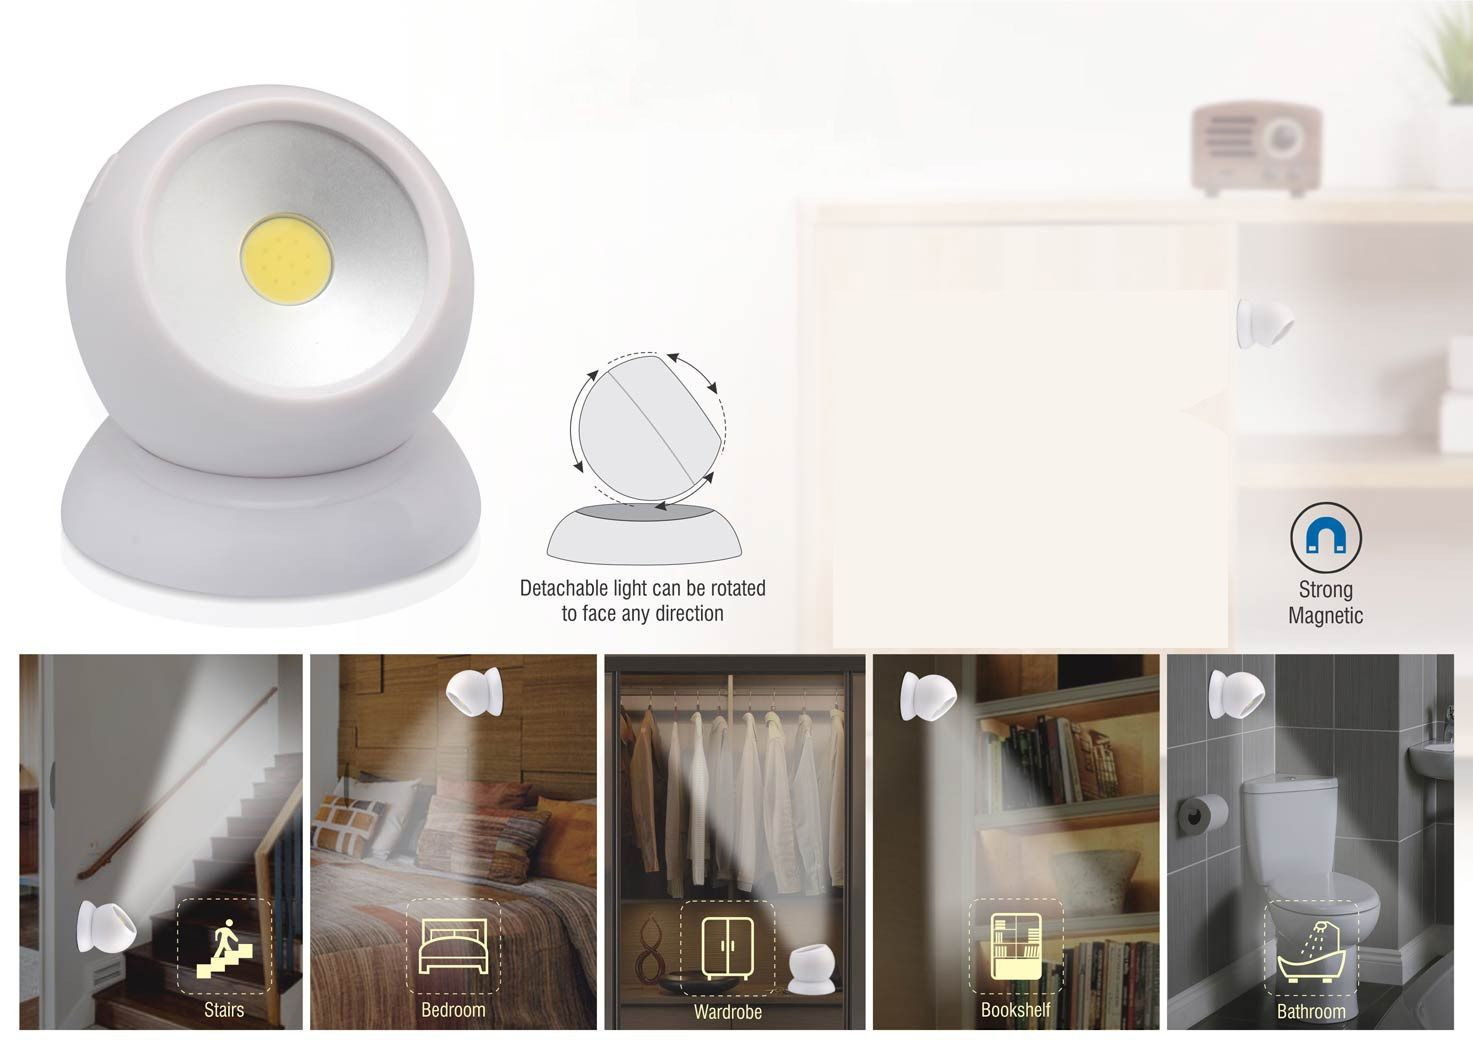 Power Plus Magnetic 720 Degree Work Light With 3 Light Modes (With Detachable Magnetic Stand) E208 White